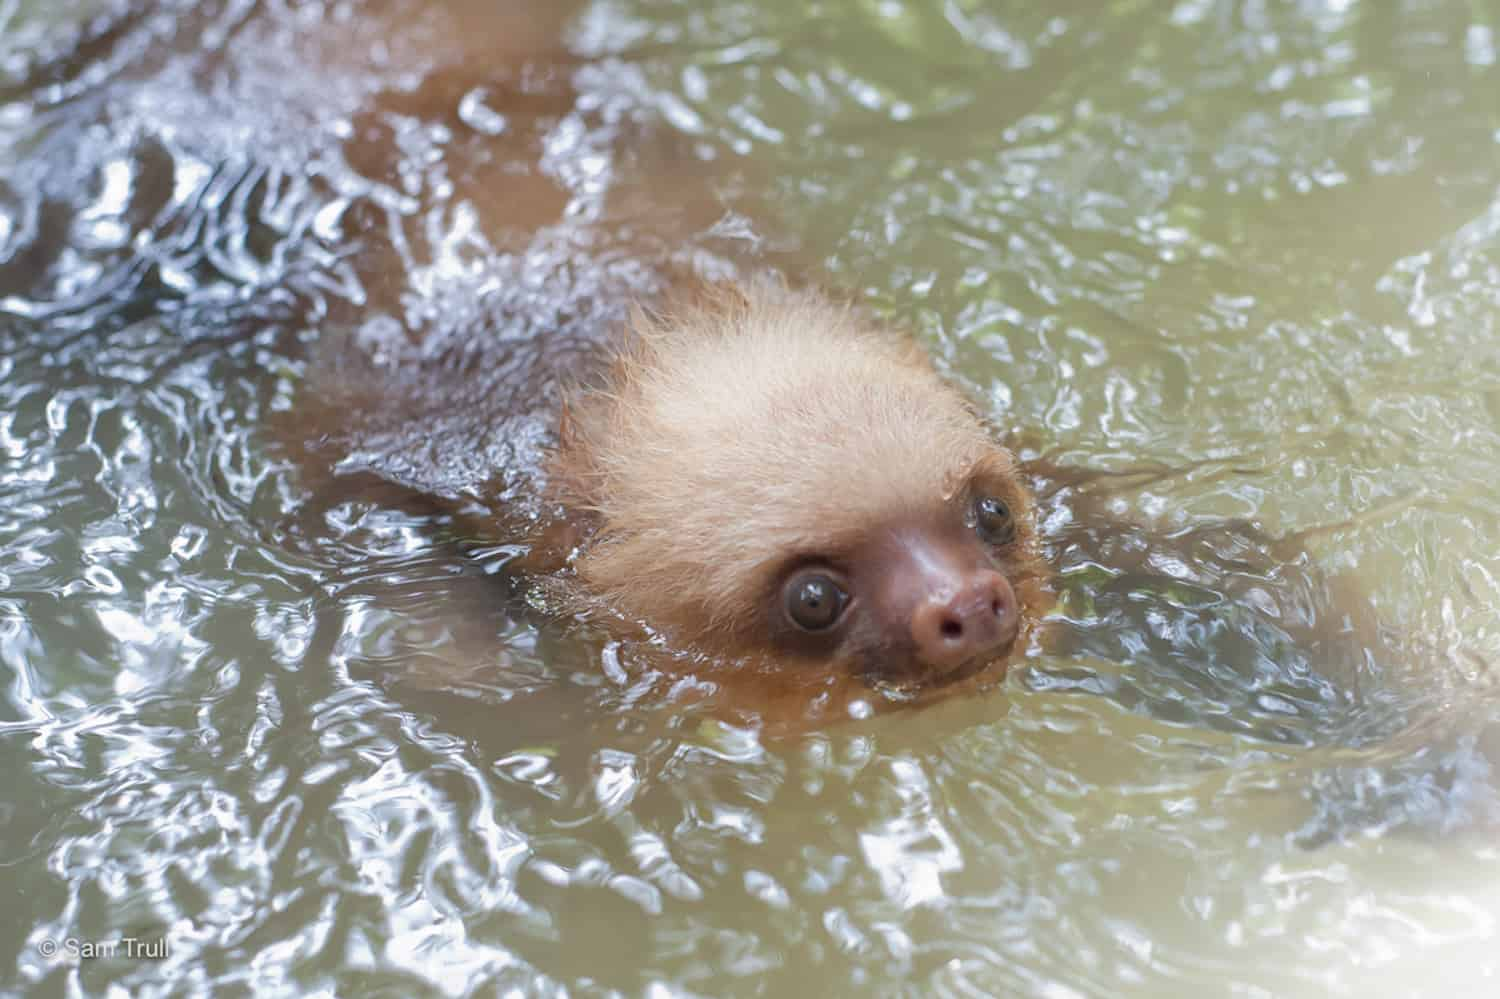 Sloths are excellent swimmers